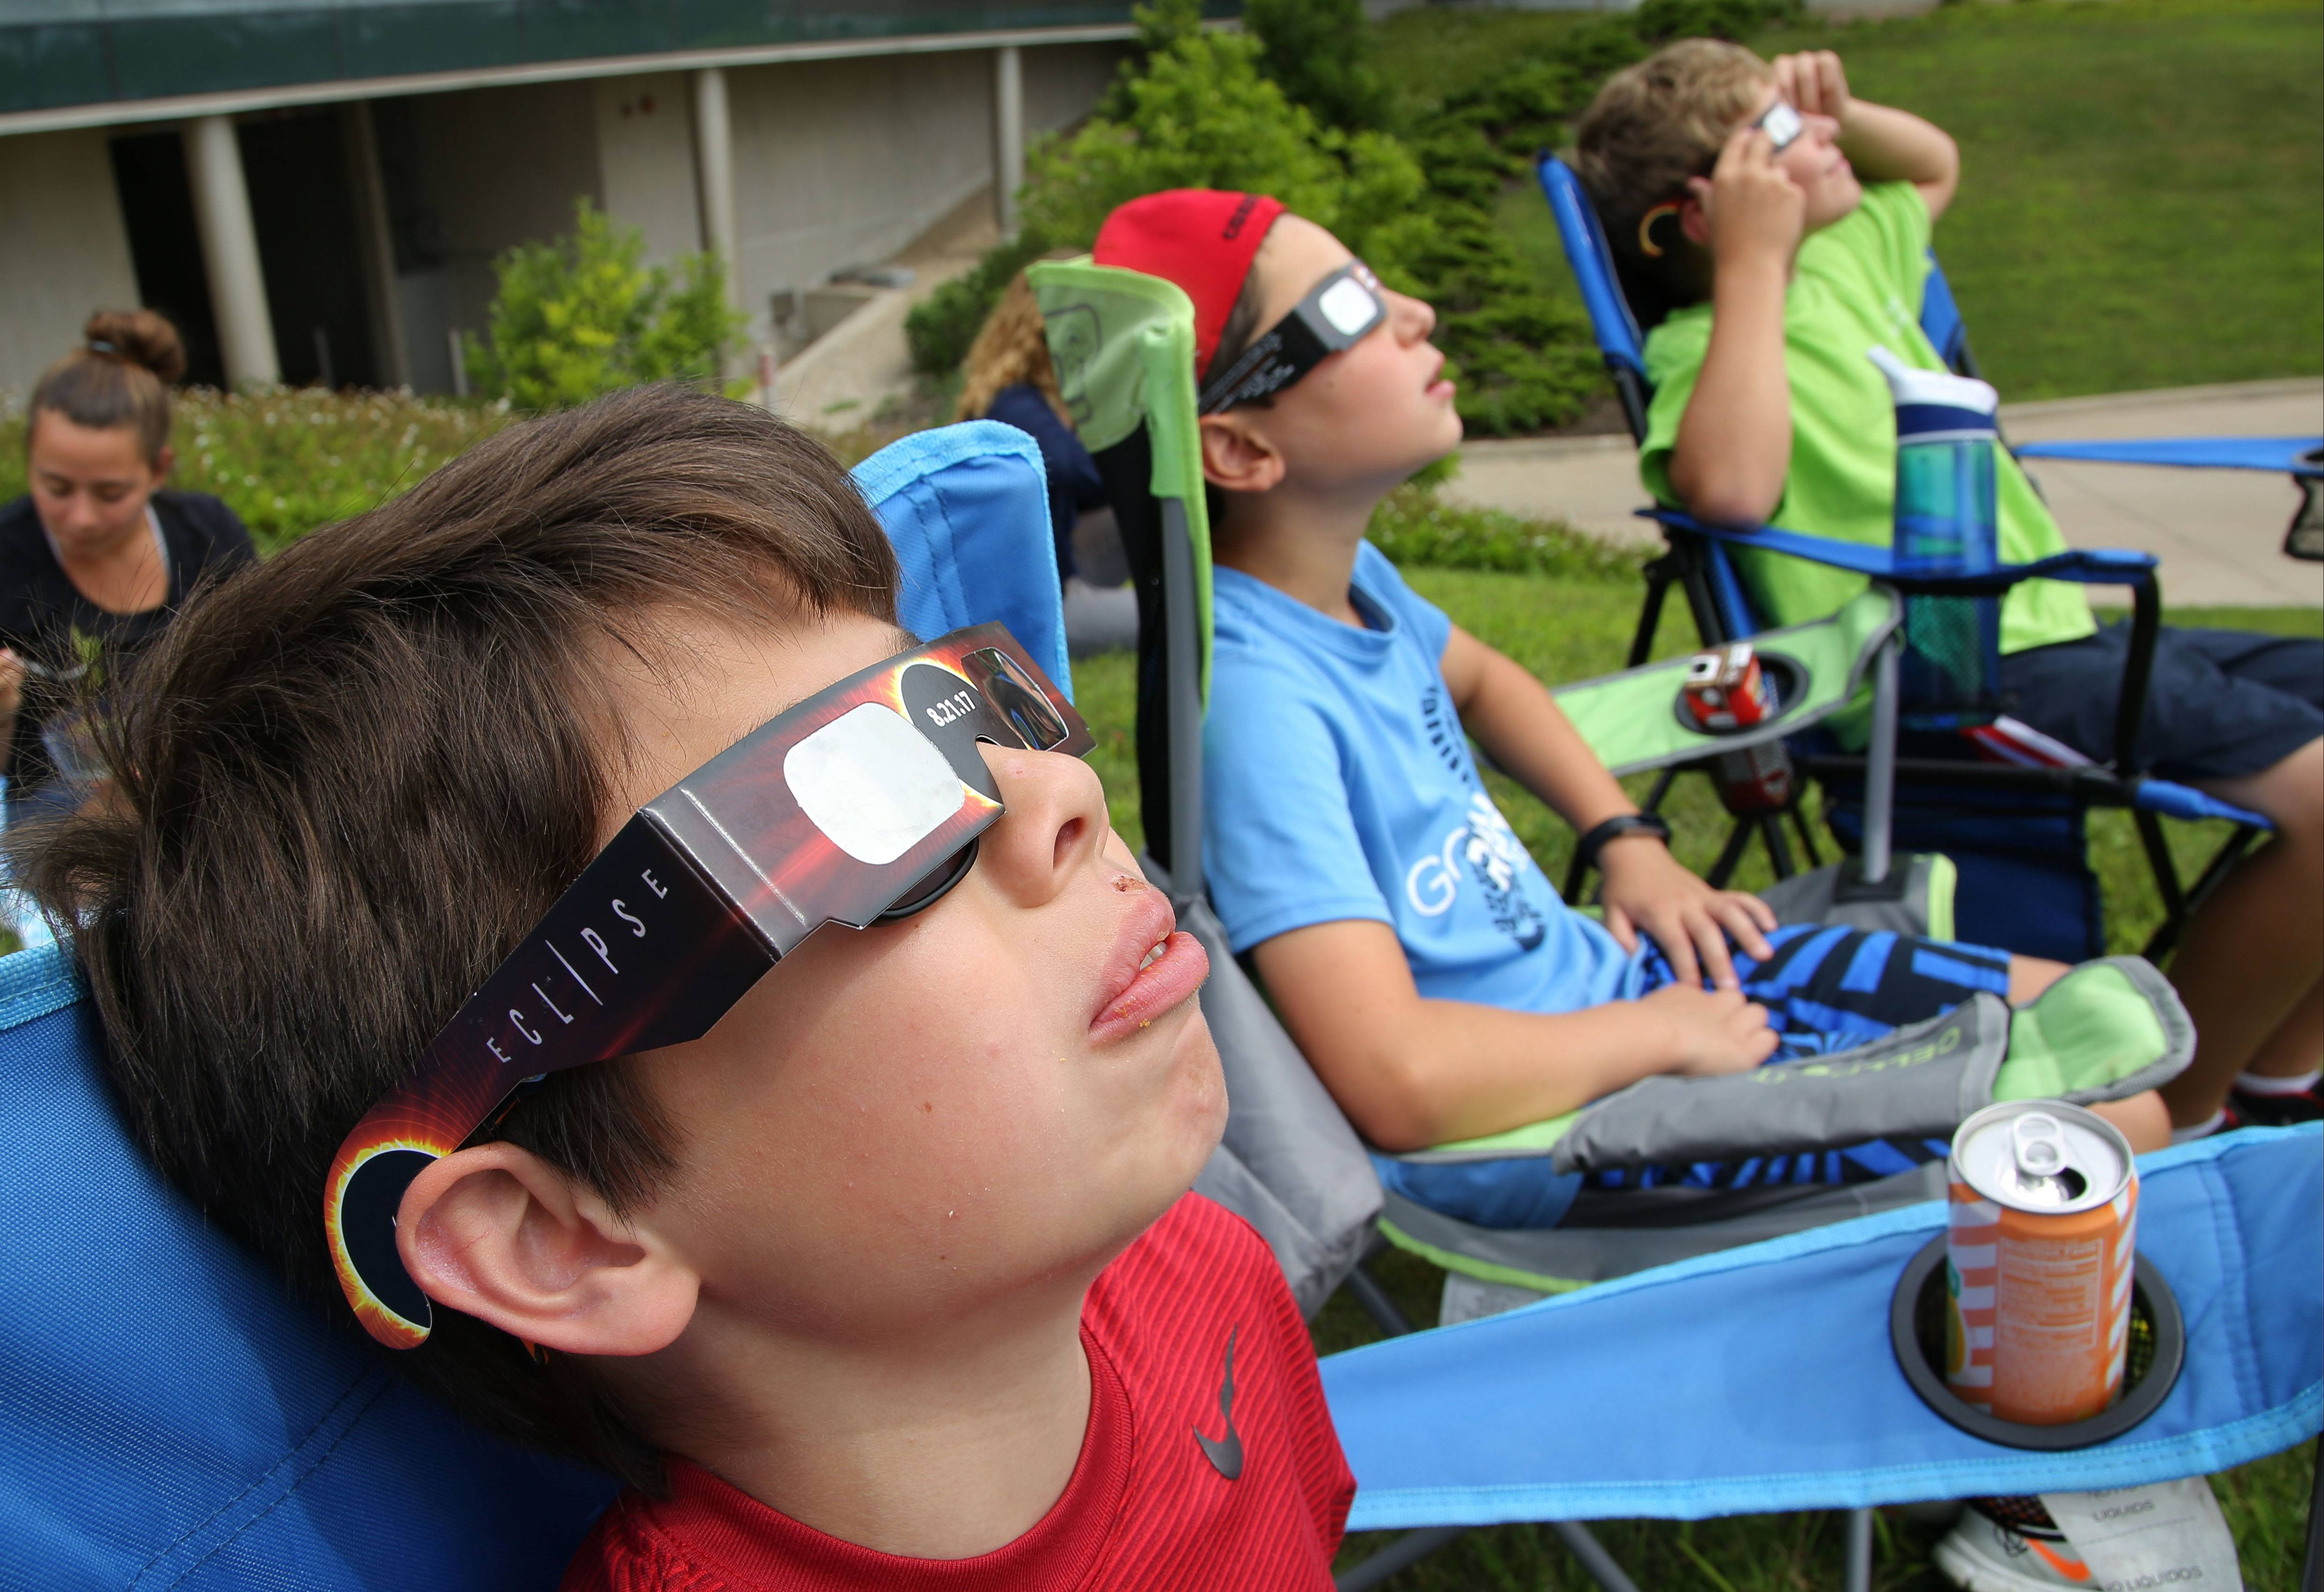 From left, Austin Eckels, Emmet Jordan and Jack Oswald, all 11 and from Palatine, use special glasses during a solar eclipse viewing party Monday at Harper College in Palatine.